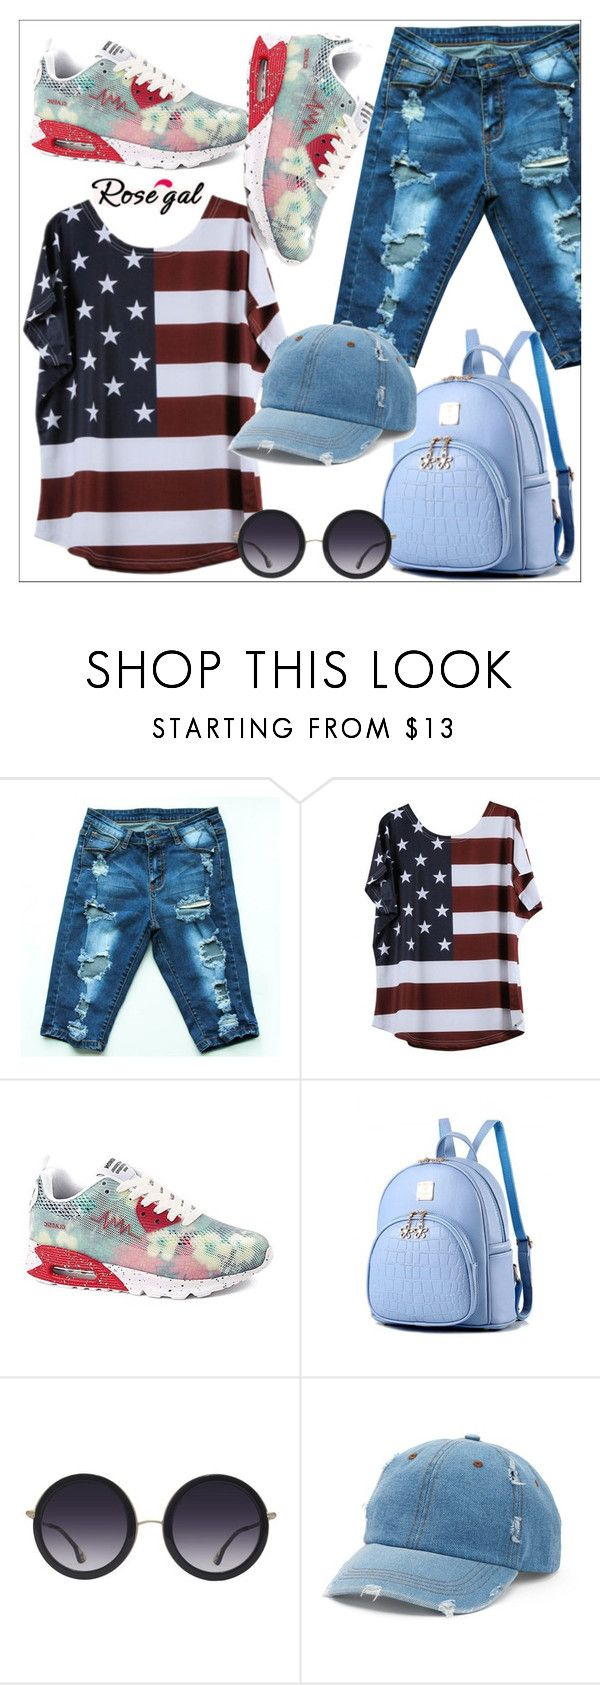 """""""Rosegal sporty look"""" by sabine-rose ❤ liked on Polyvore featuring Alice + Olivia, Mudd, Summer, Blue, beach and rosegal"""